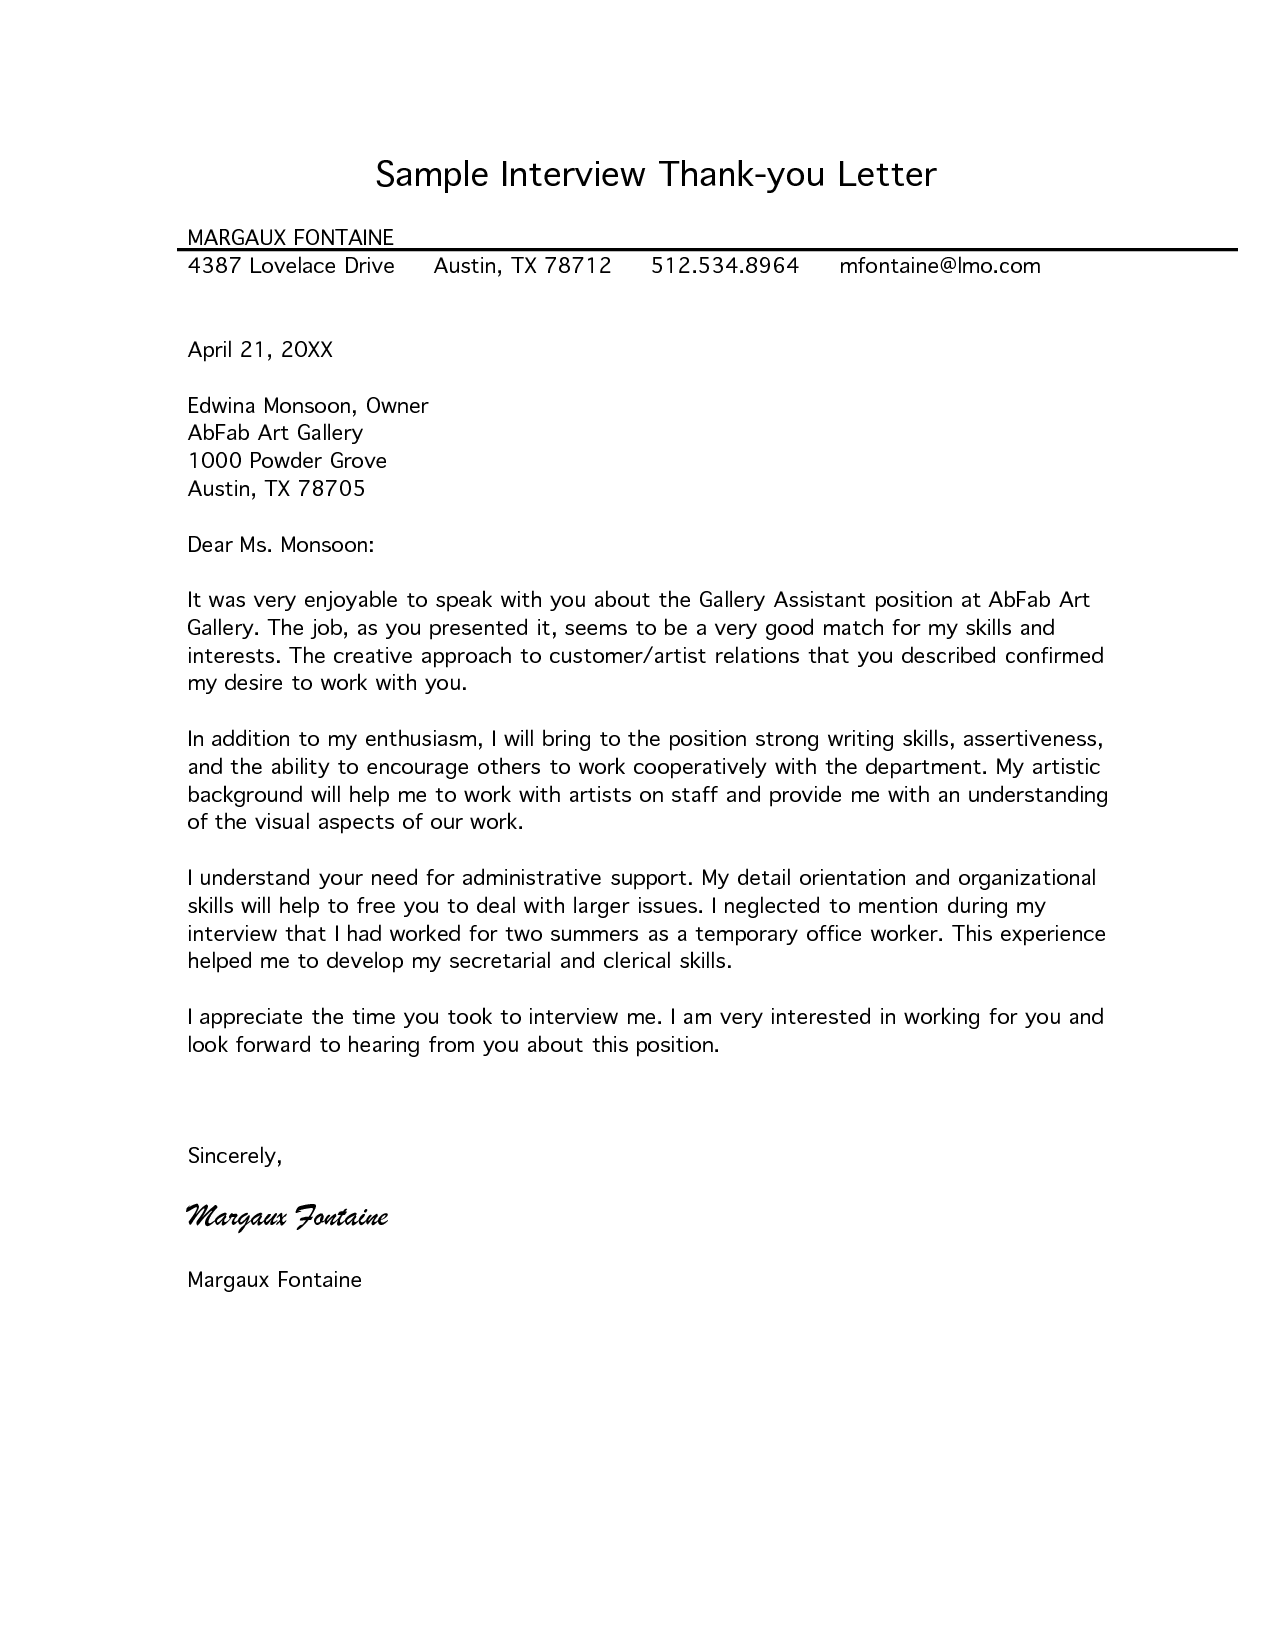 Thank You Letter For Acknowledgement Of Job Application - Blog.lif